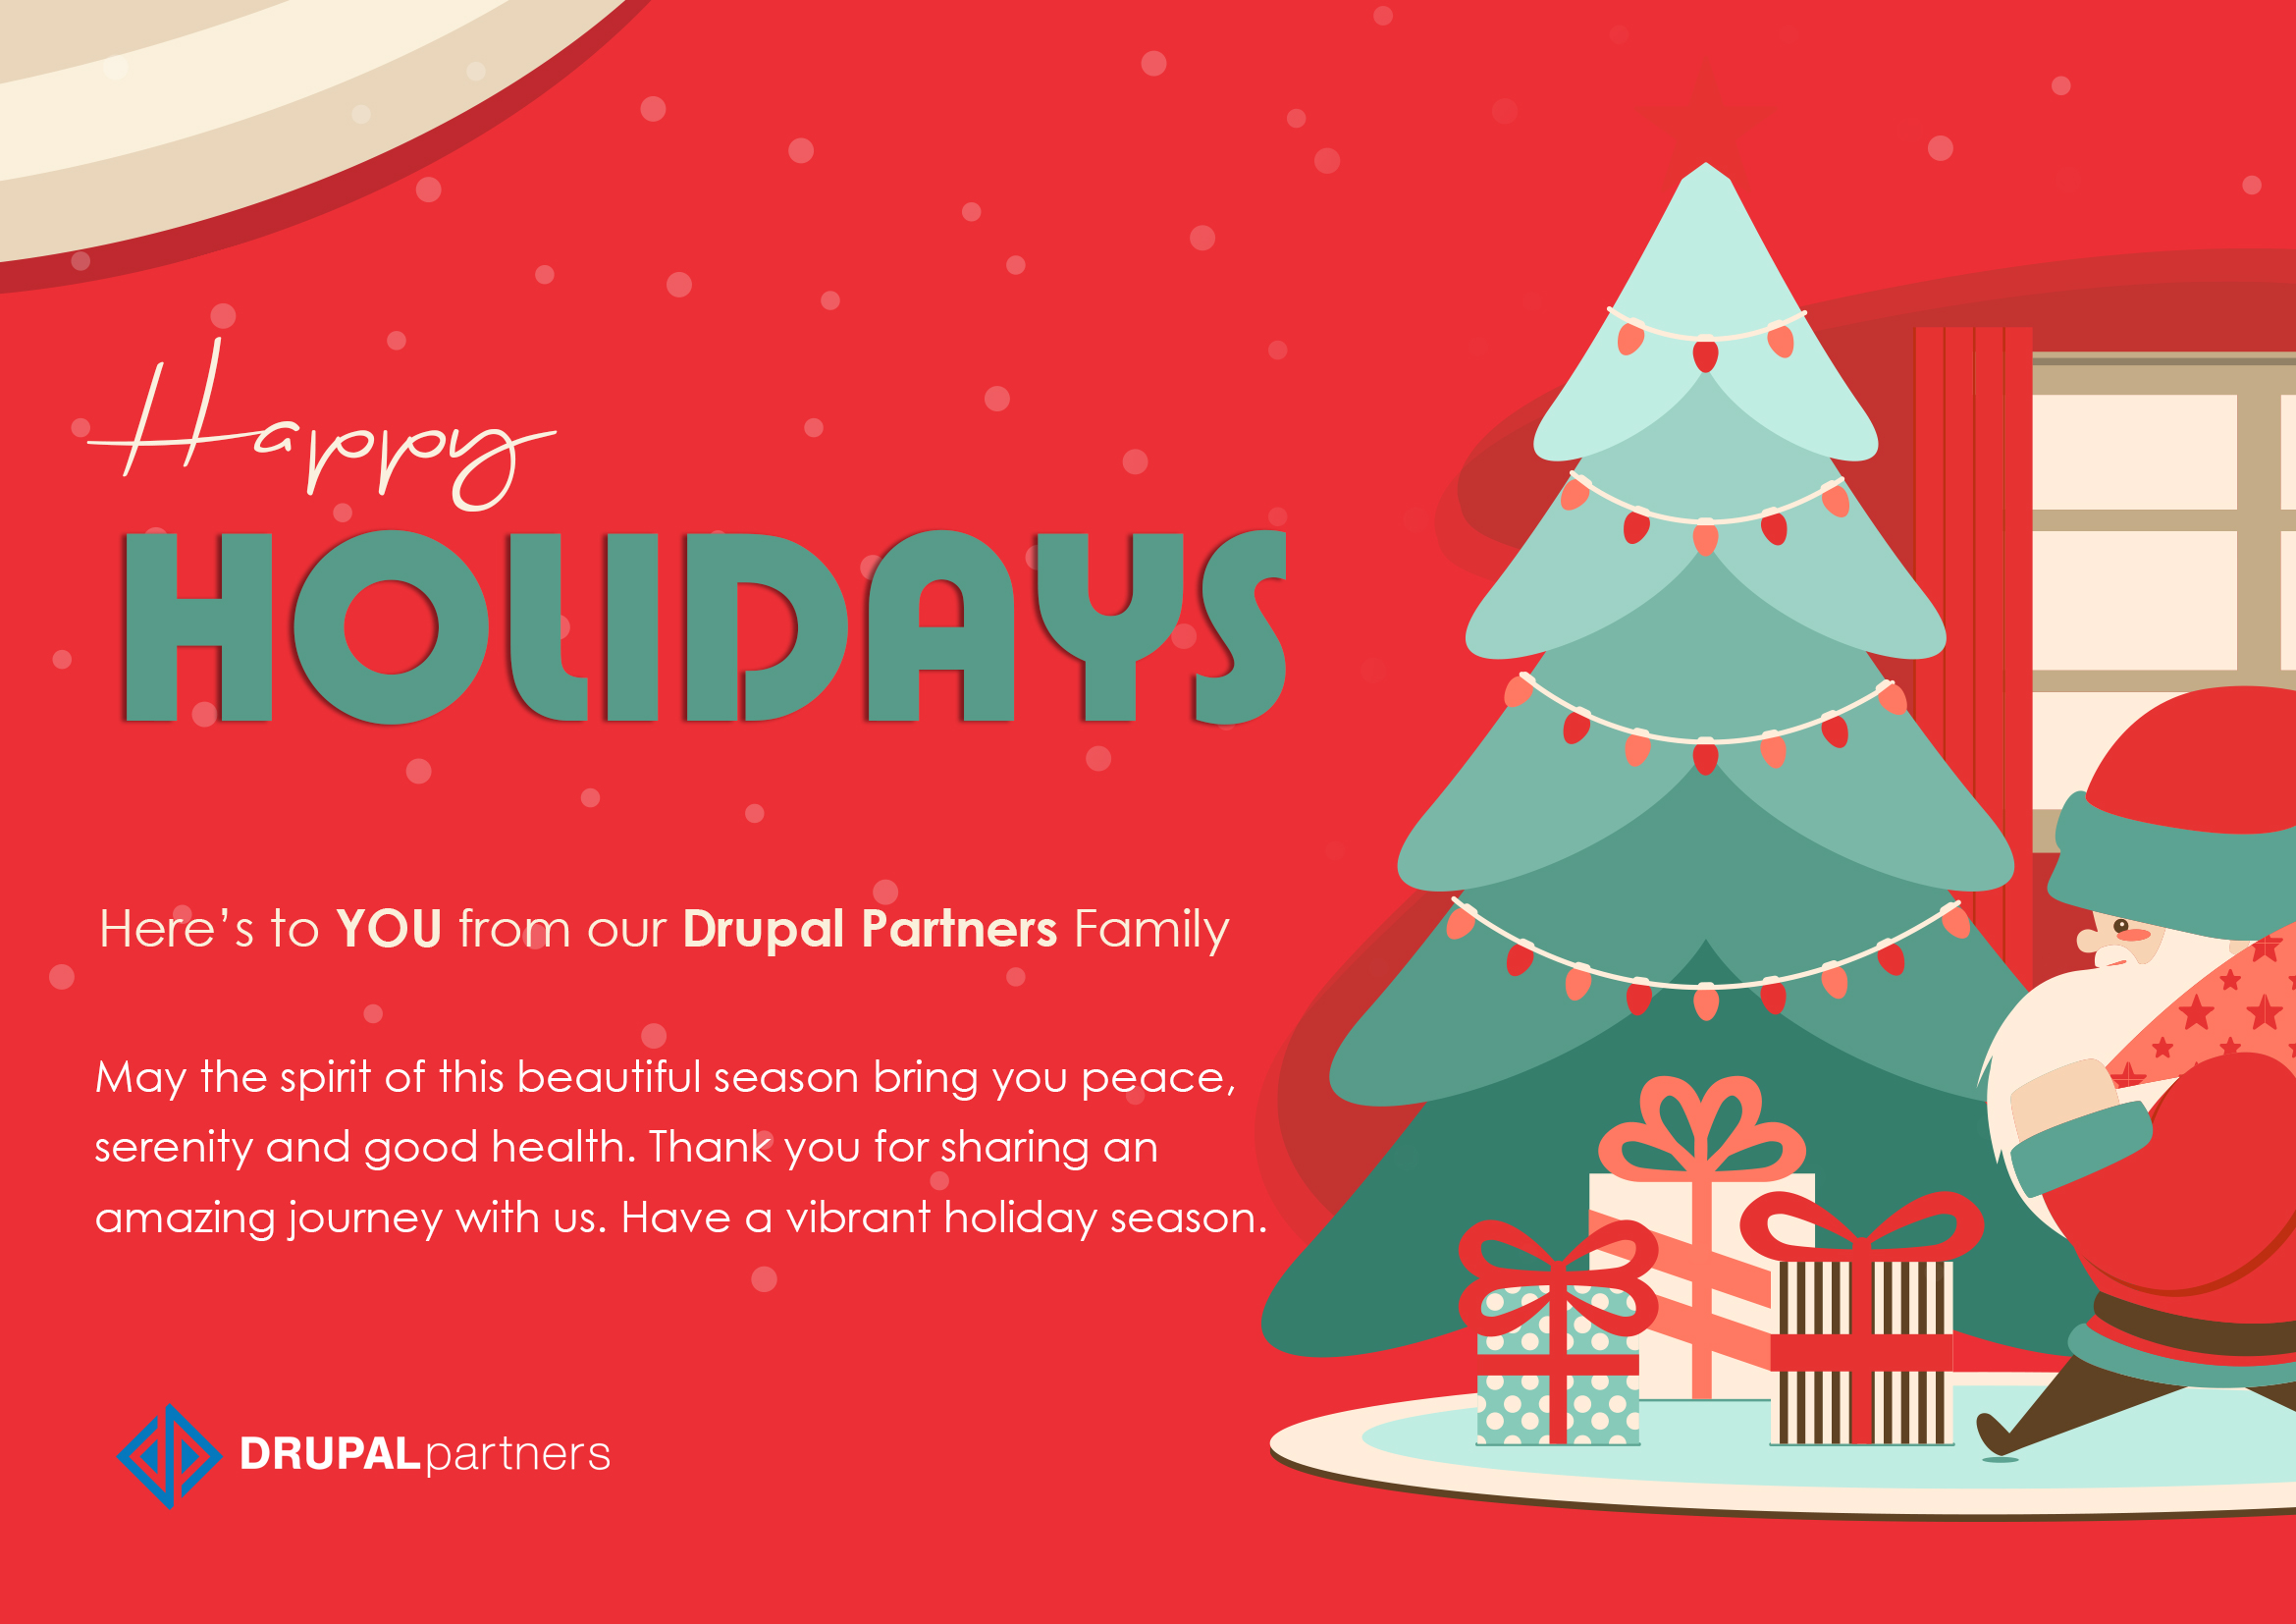 Happy Holidays From DrupalPartners